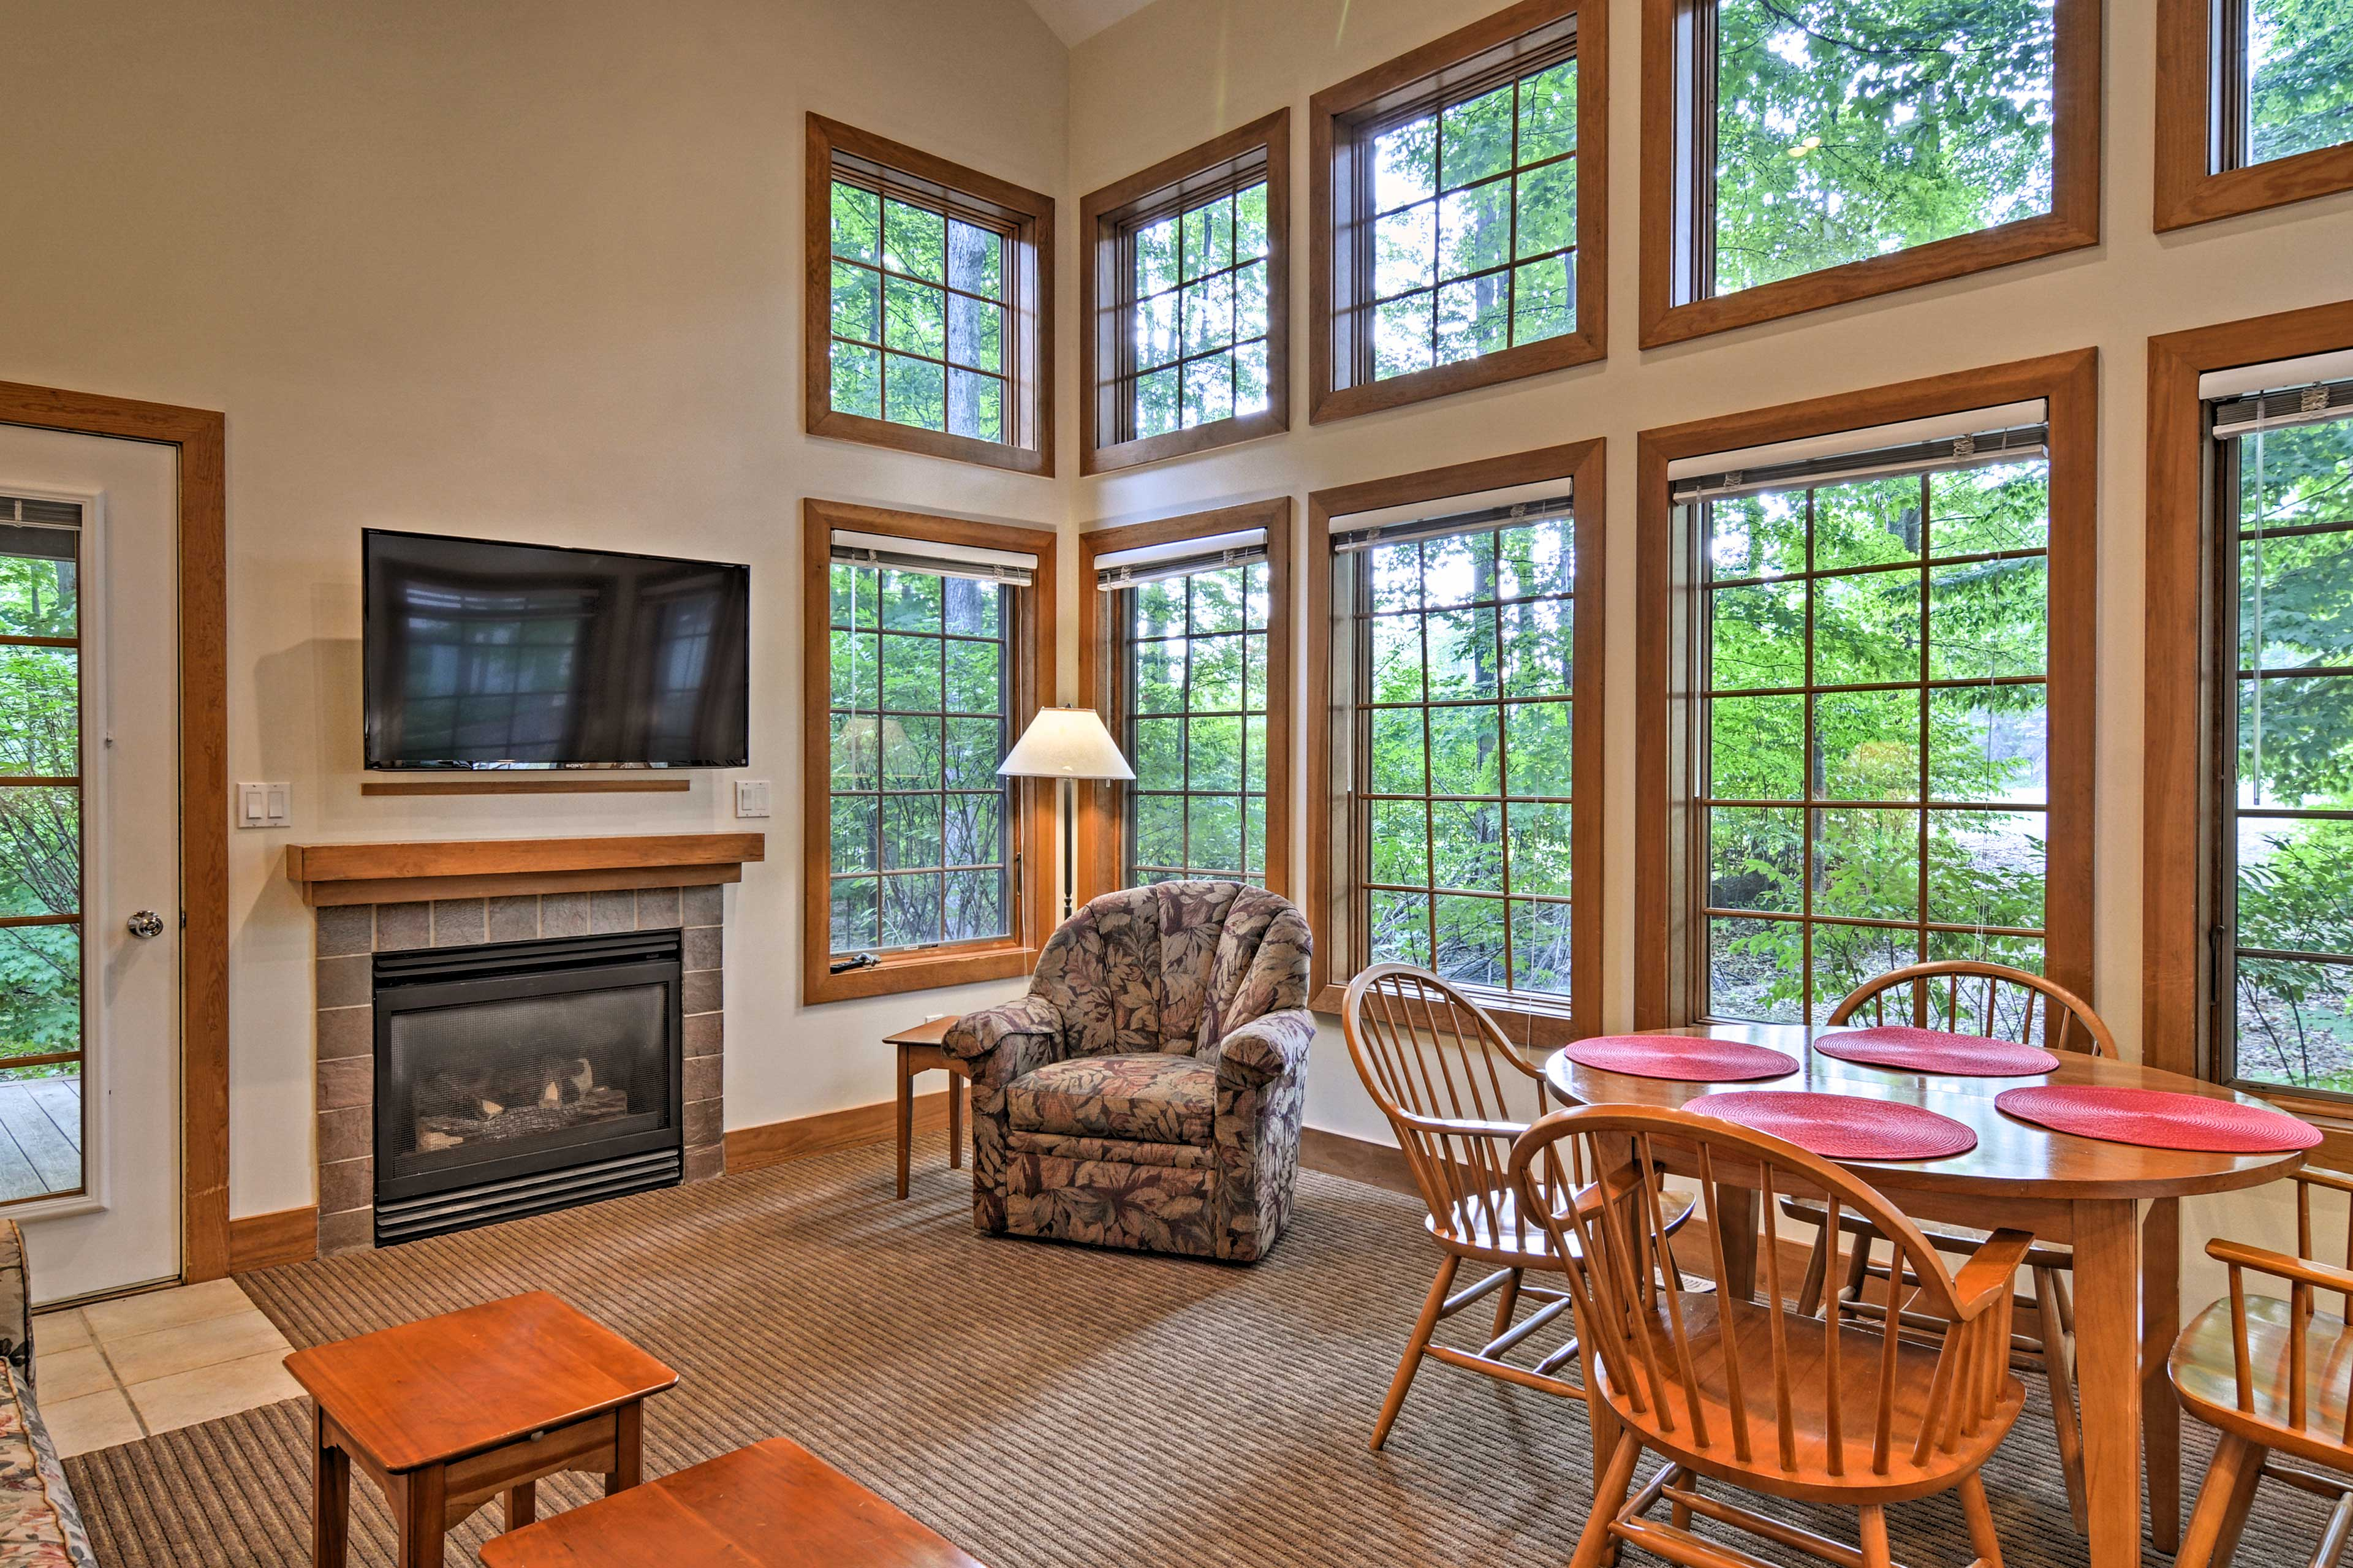 An unforgettable mountain getaway is in store for 12 at this Boyne Falls condo!